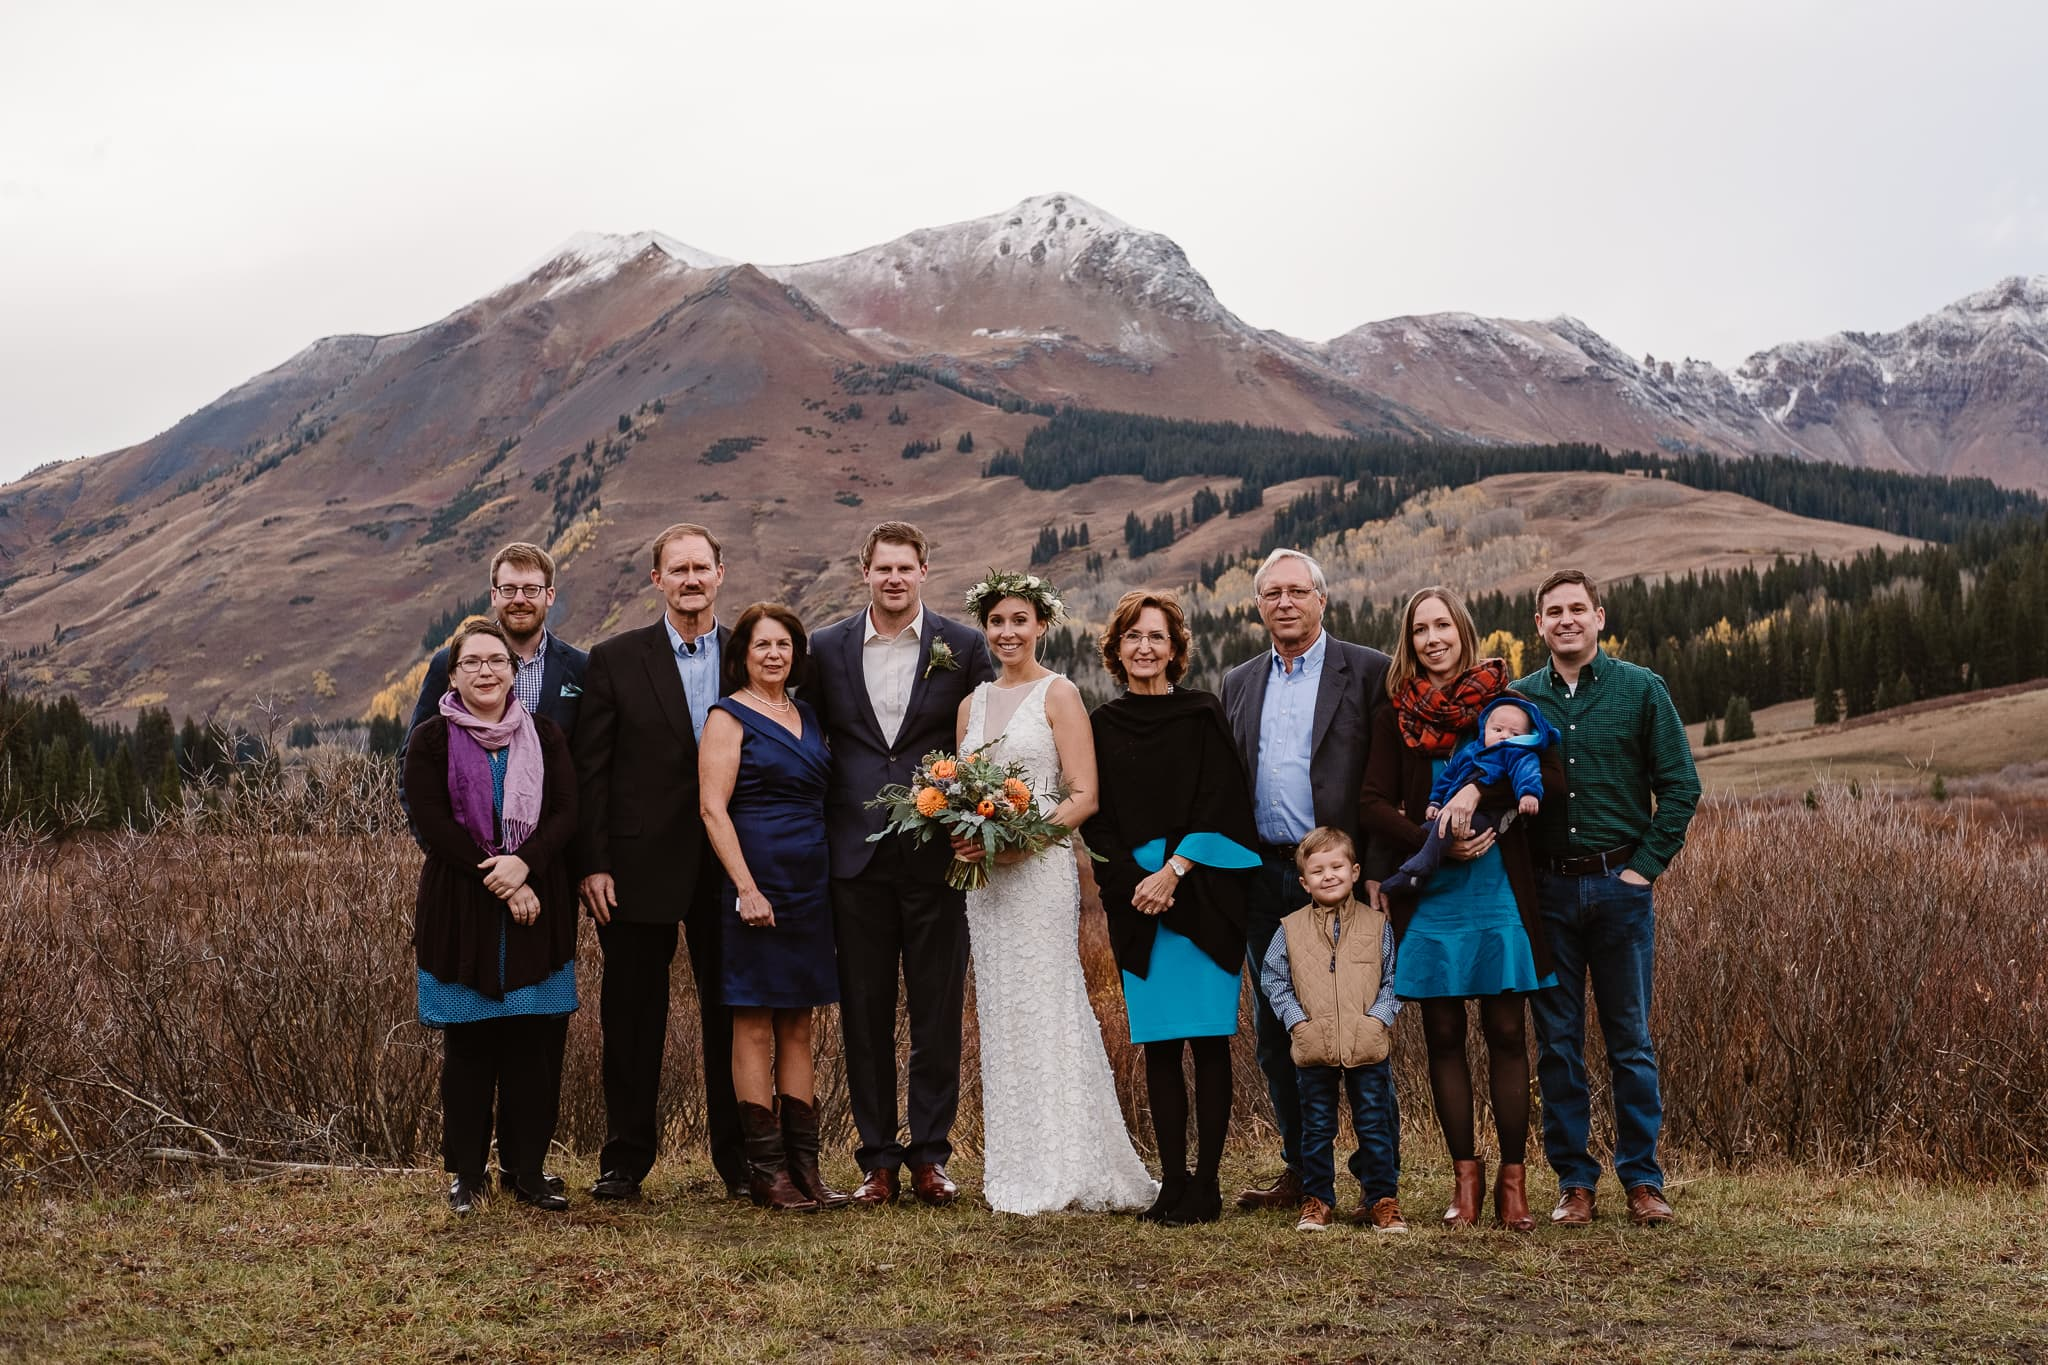 Crested Butte Wedding Photographer, Scarp Ridge Lodge intimate elopement, outdoor elopement in Colorado, Colorado mountain adventure wedding, group photo with guests